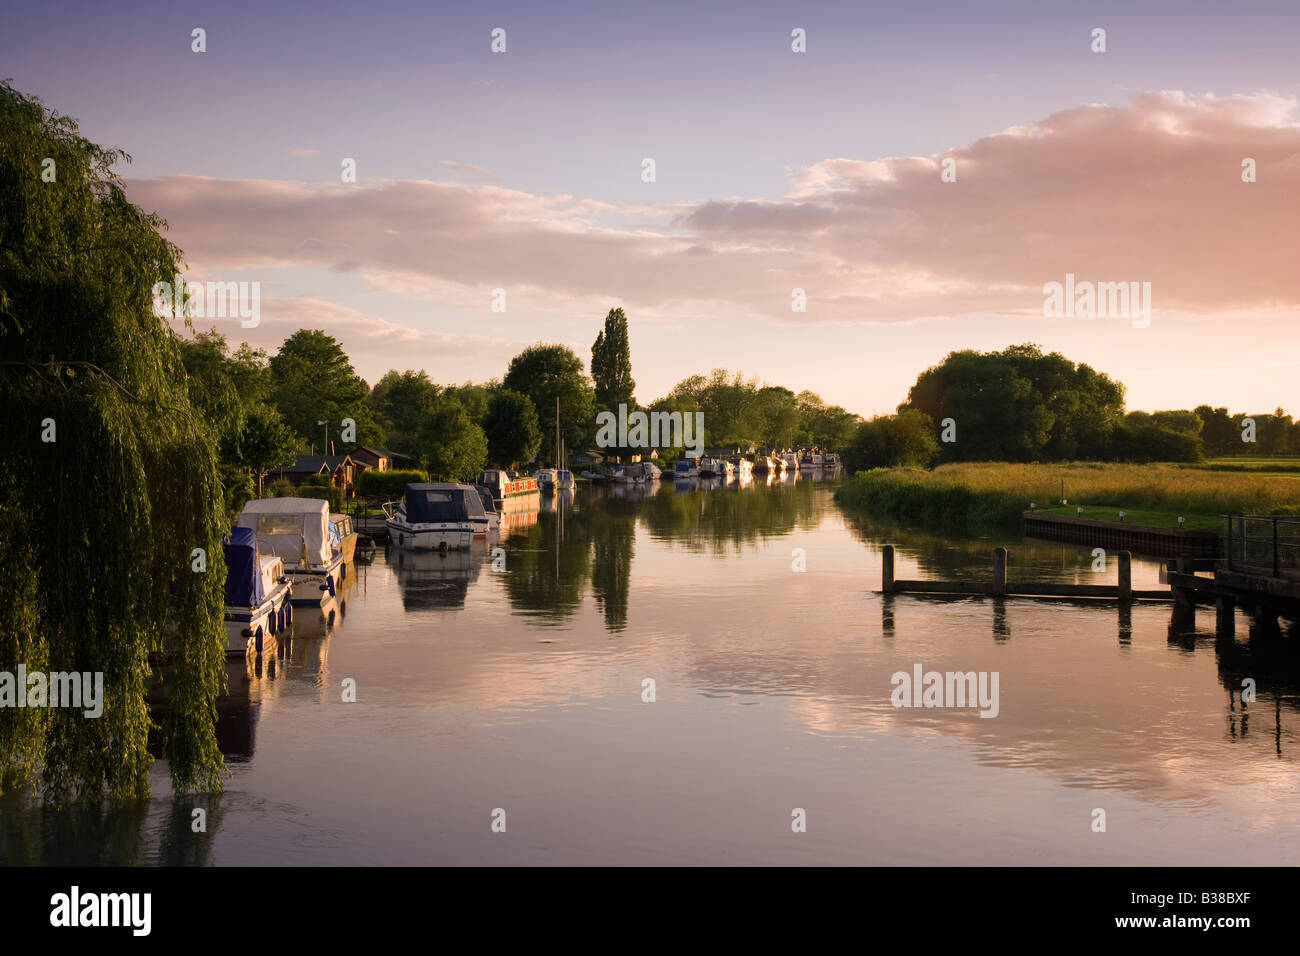 Boats along the River Nene at Peterborough in Cambridgeshire - Stock Image